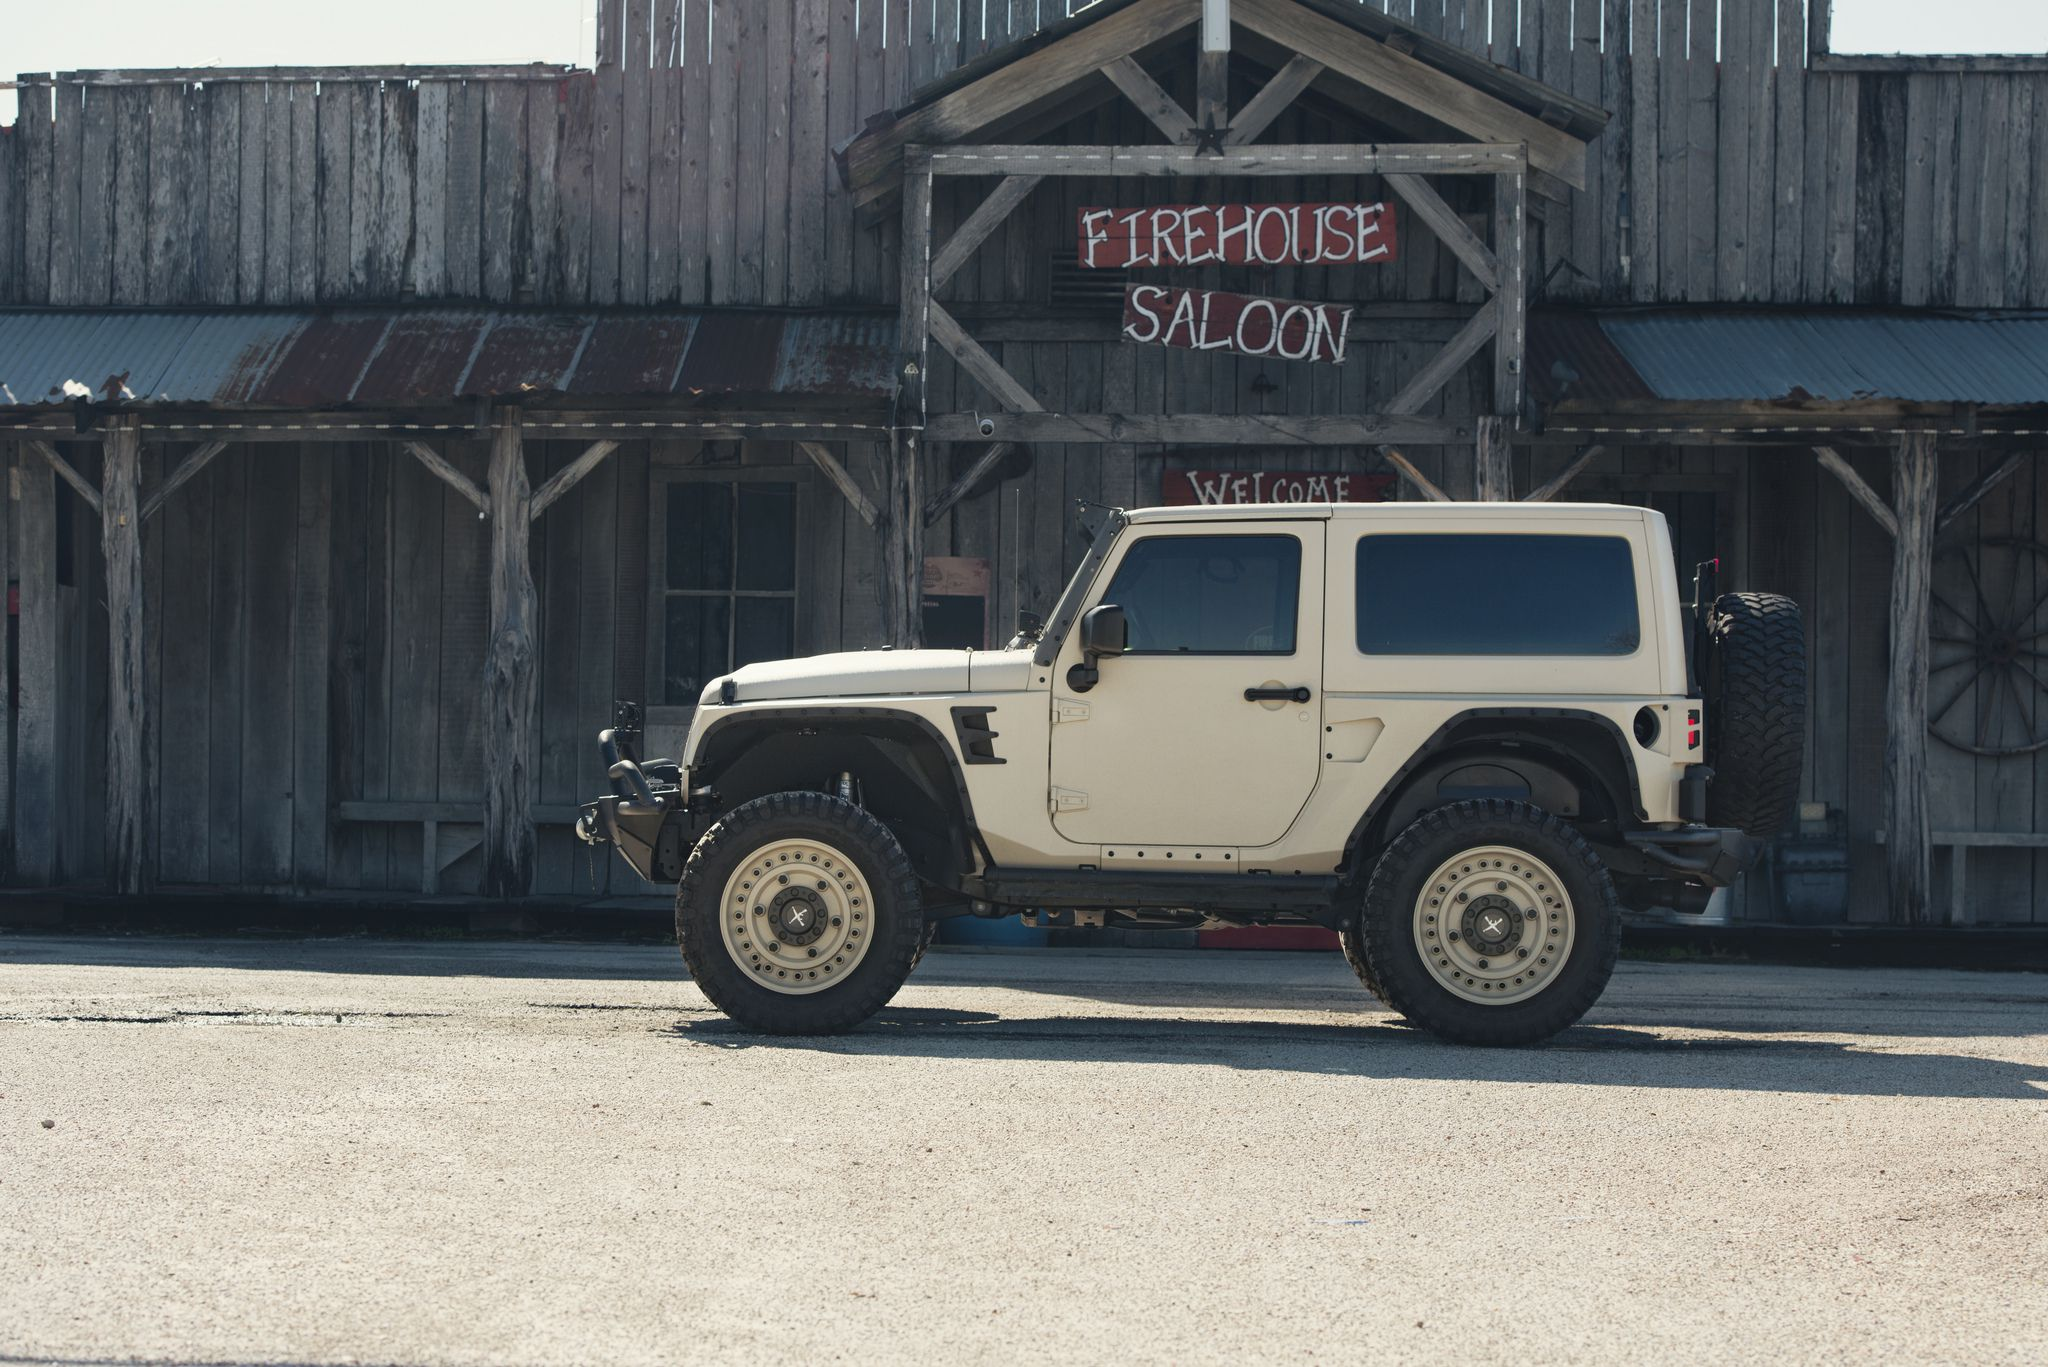 Spanish White Jeep Wrangler JK near FireHouse Saloon